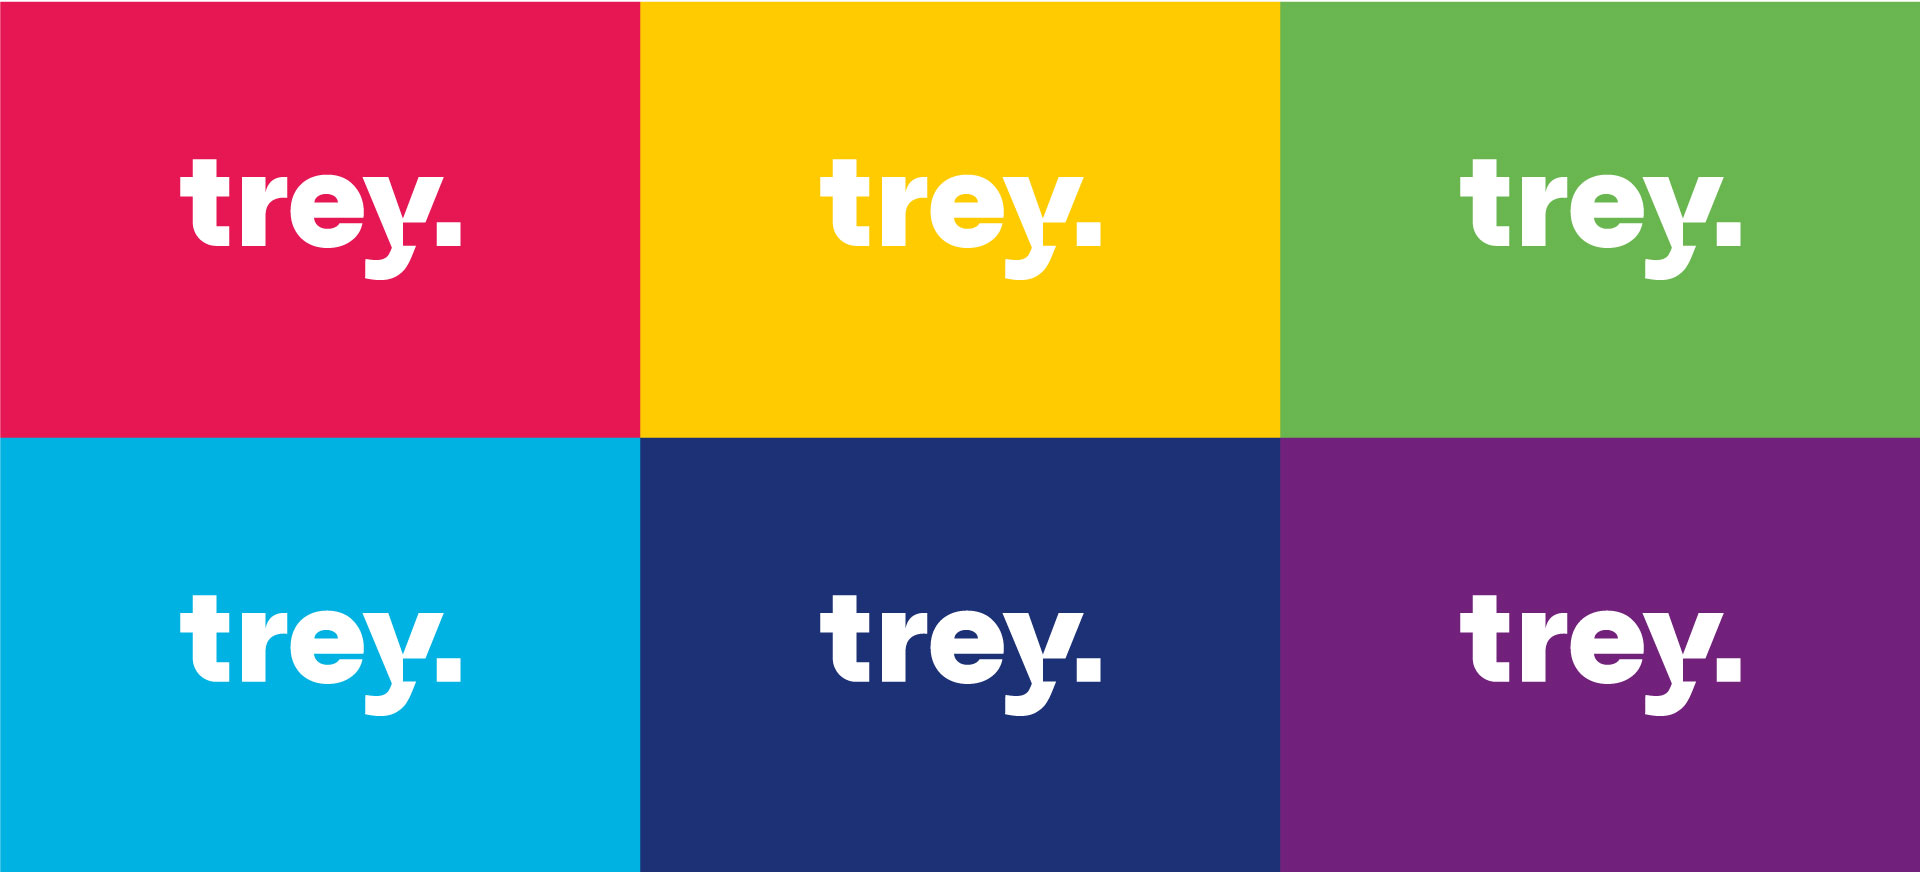 trey versiones a color logo marca marco creativo